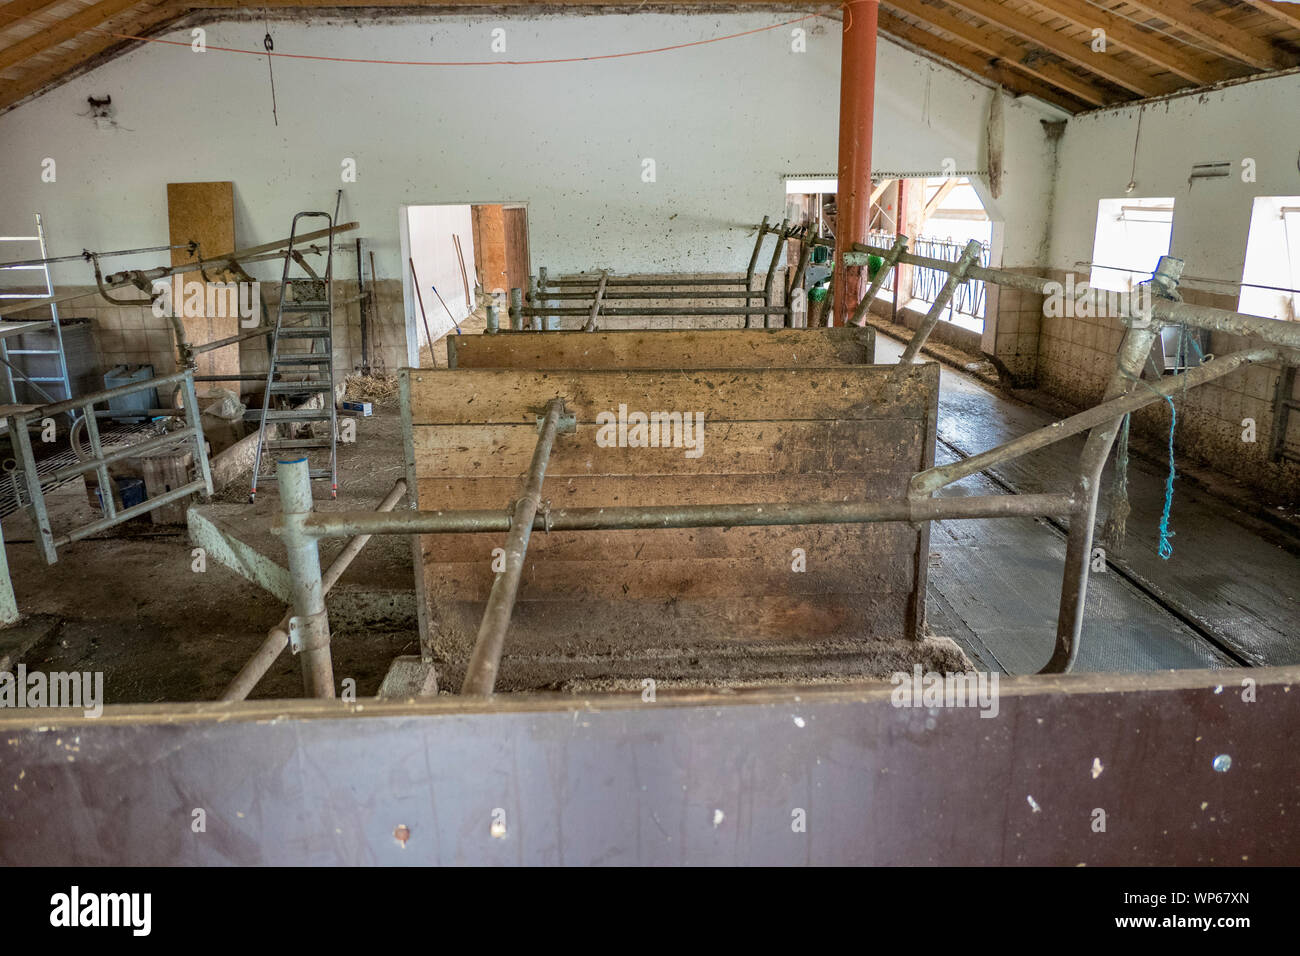 Overview of an empty cowshed with boxes Stock Photo